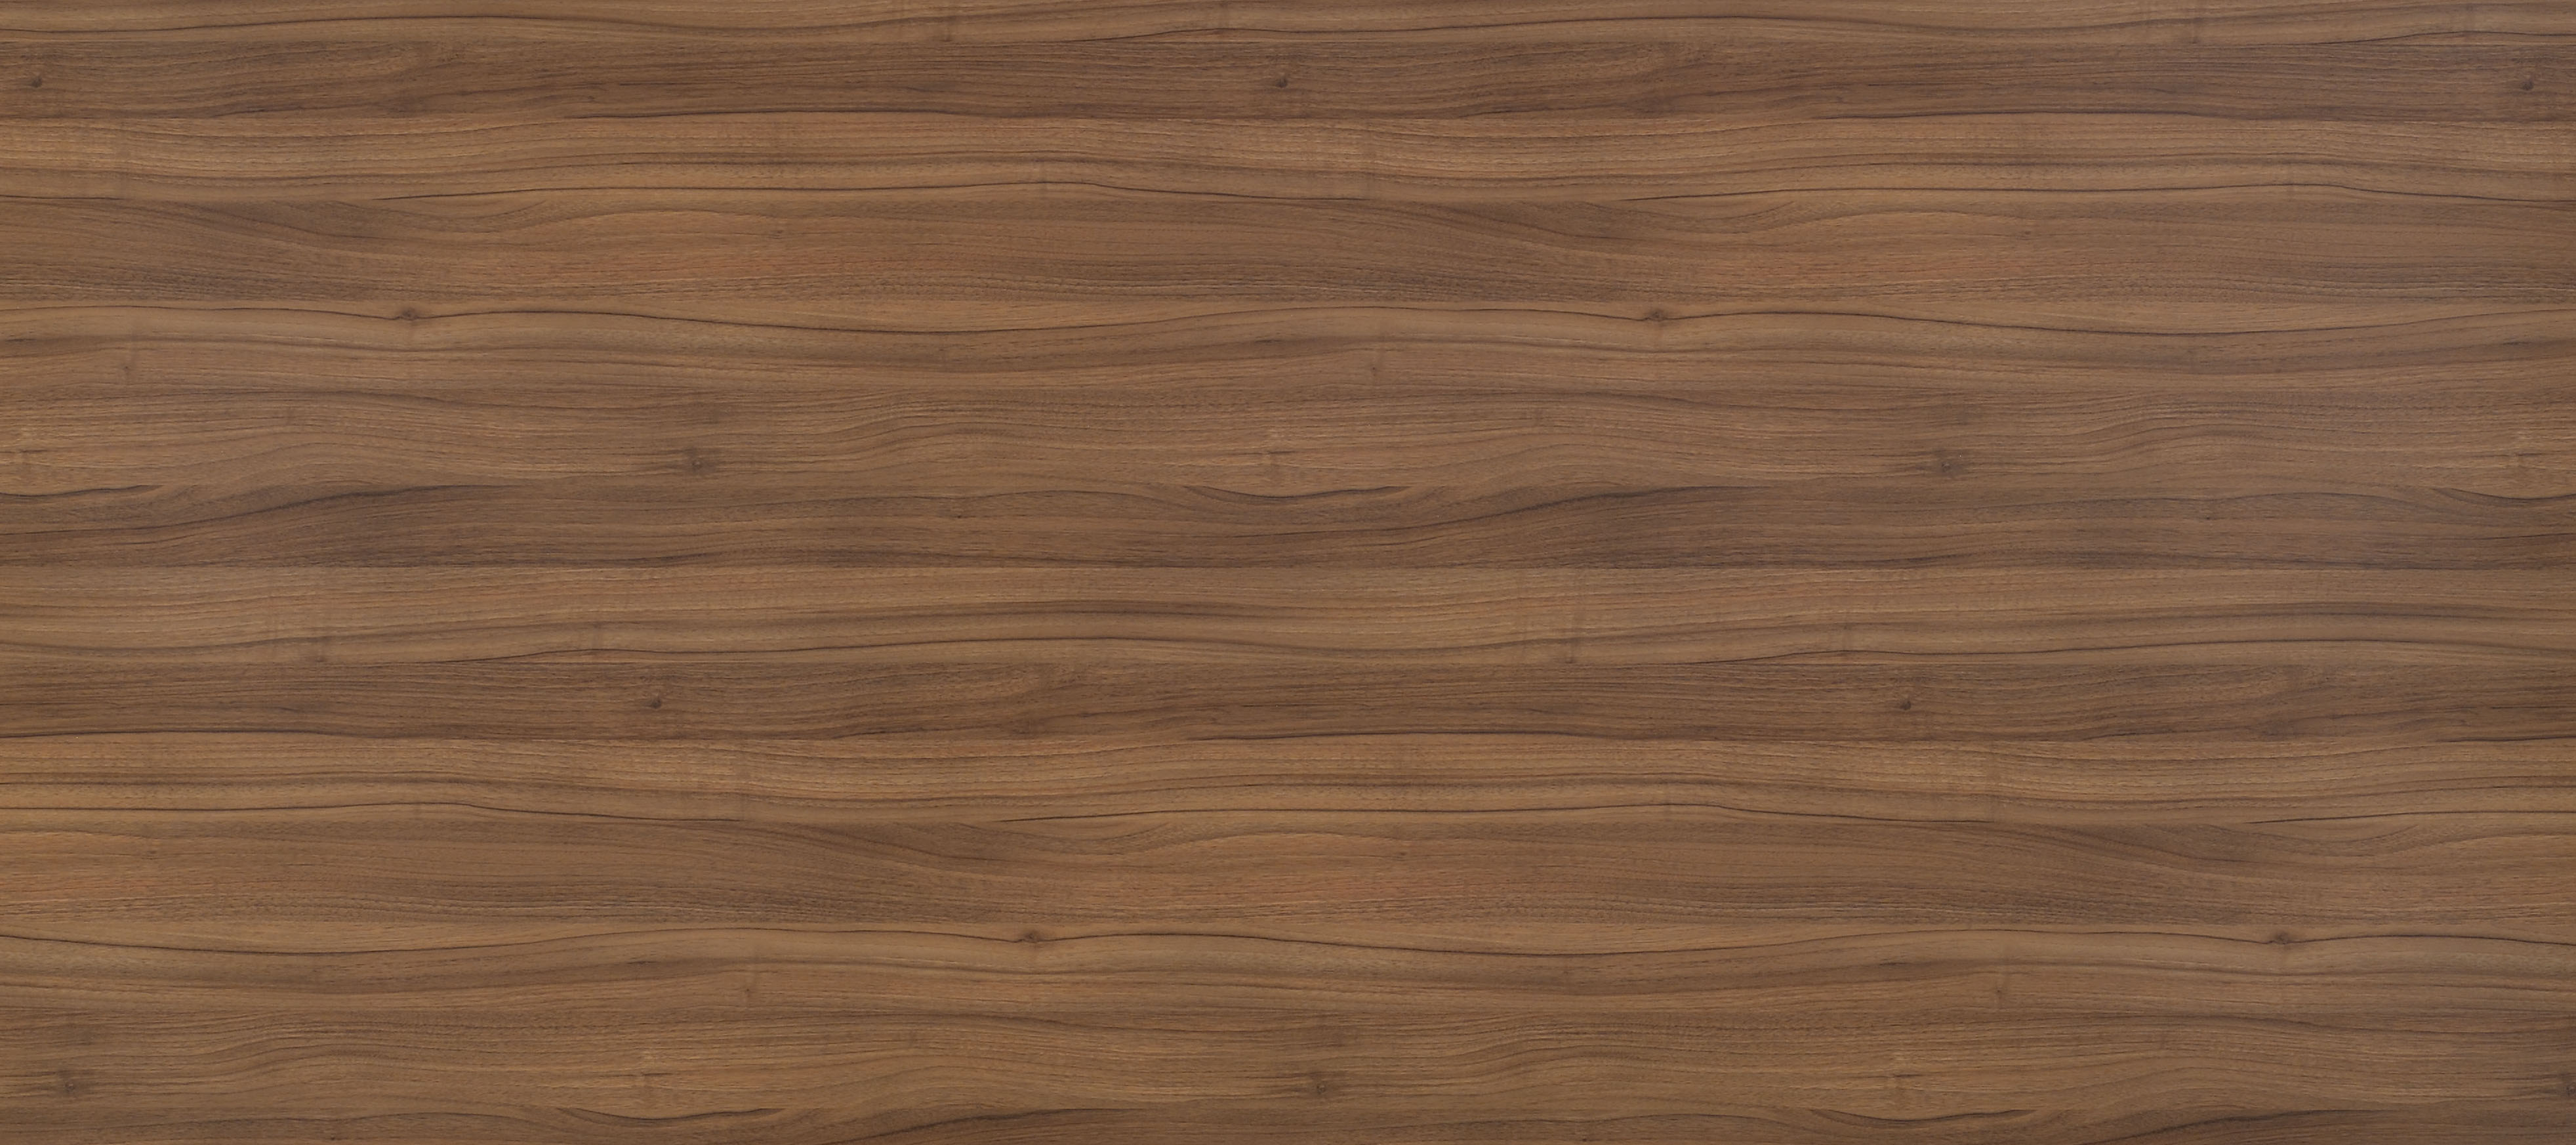 Wood Texture For Elevation : Texture wood free download photo